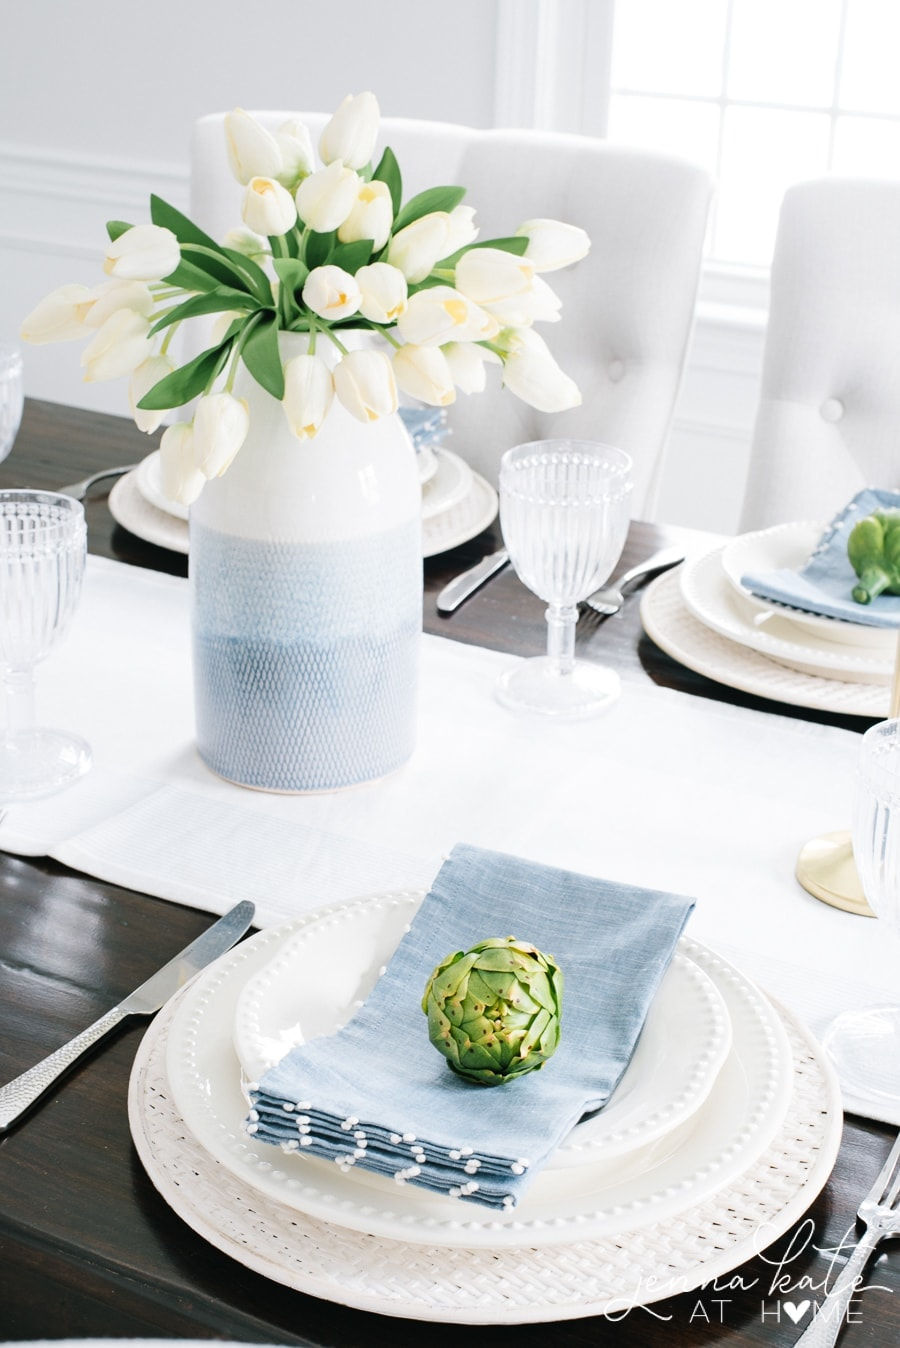 Faux artichokes and tulips are the best pop of green for spring table decor